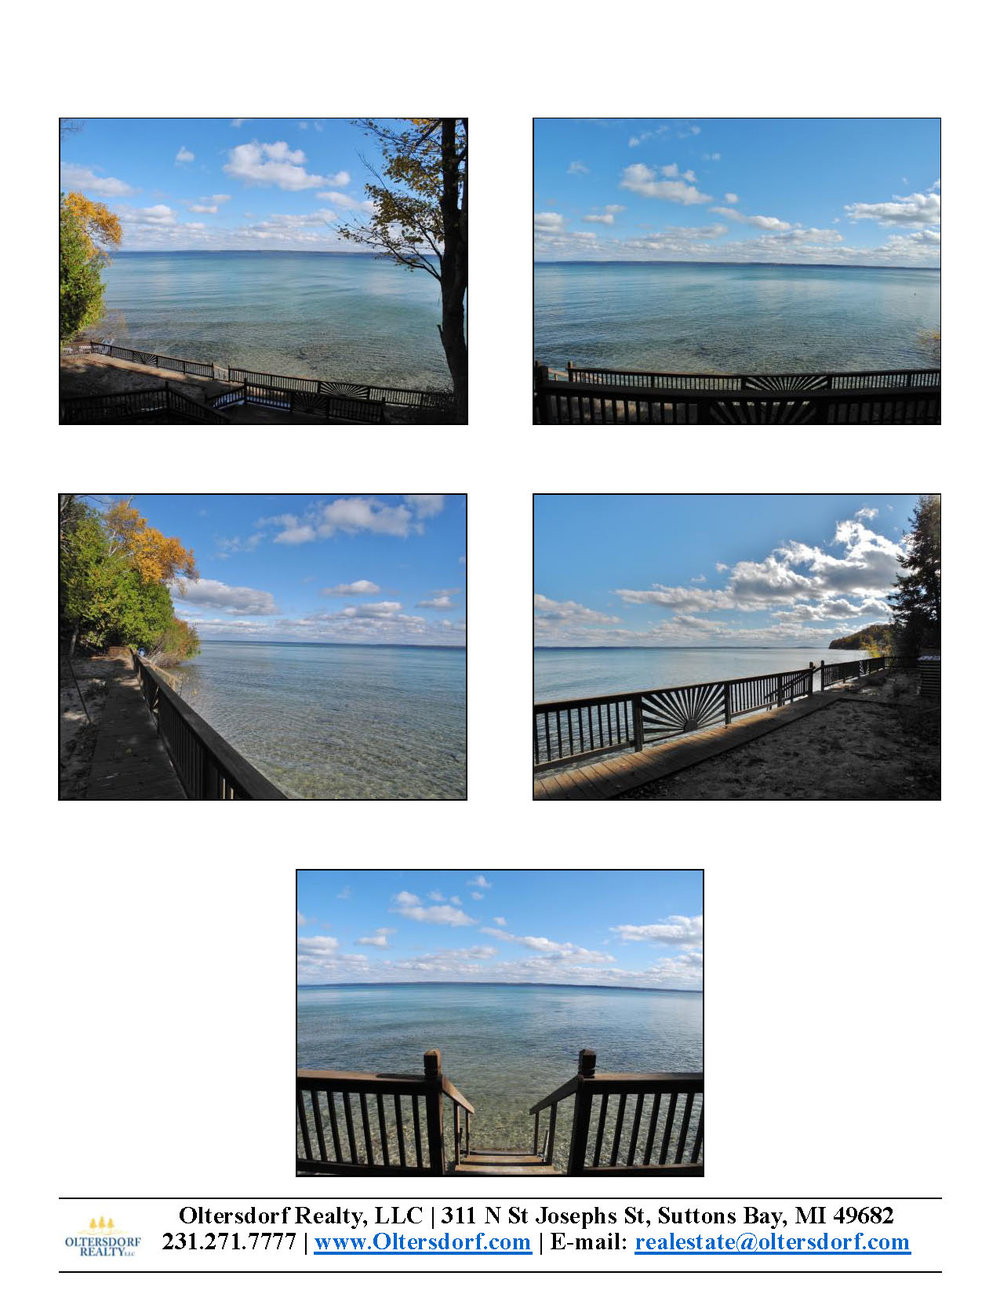 1497 S Nanagosa Trail, Suttons Bay, MI – Home with 200' on West Grand Traverse Bay Full Marketing Packet (4).jpg